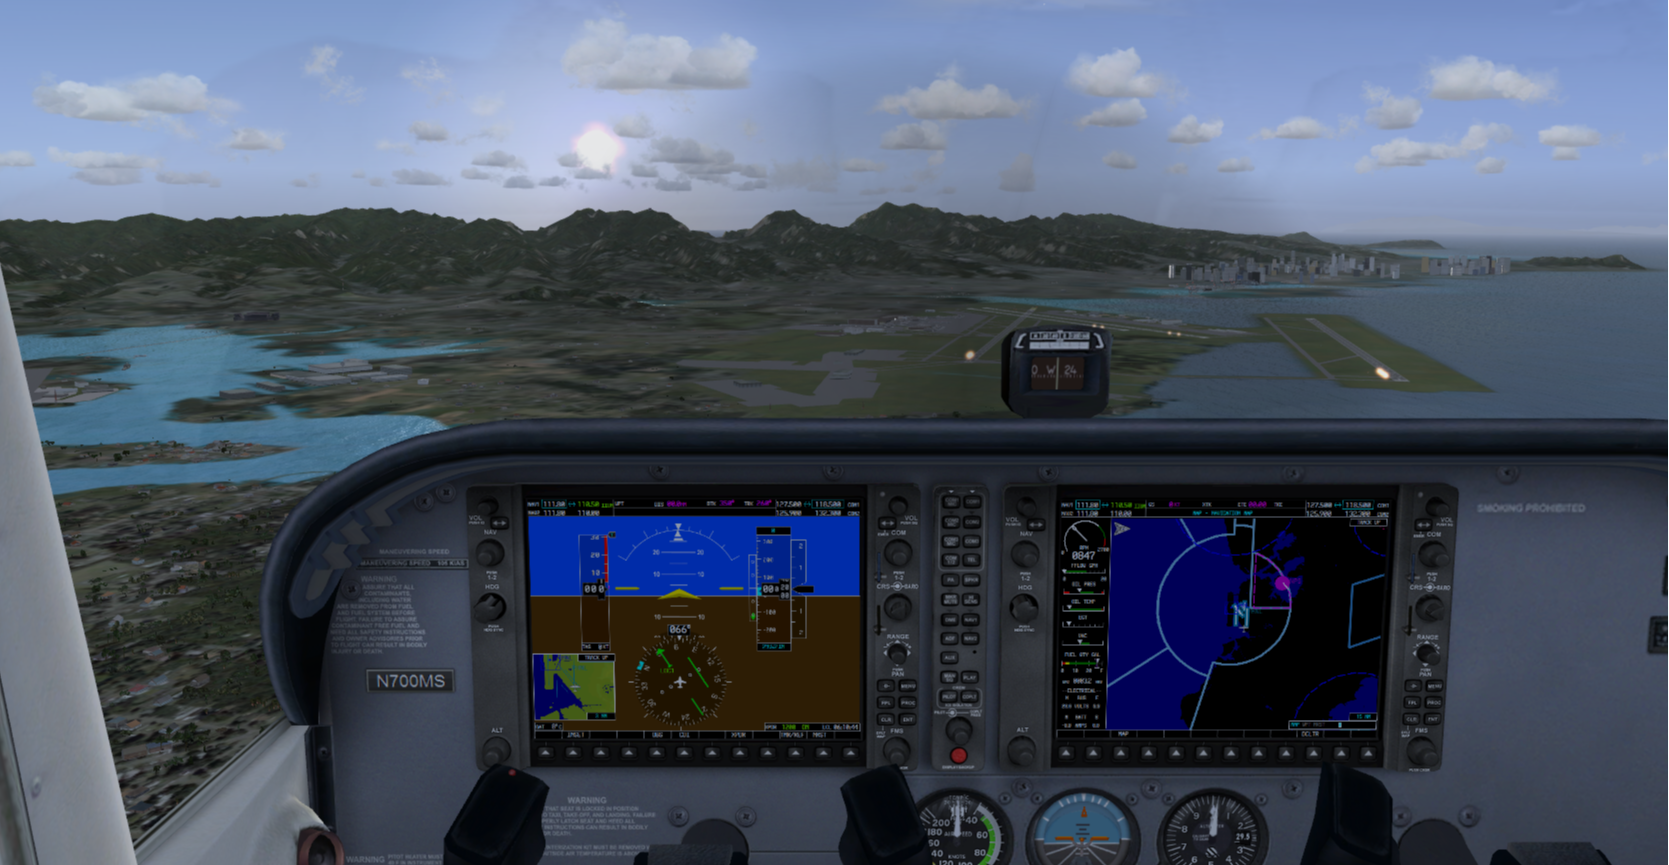 5 Tips to Stay Proficient on a Home Flight Simulator